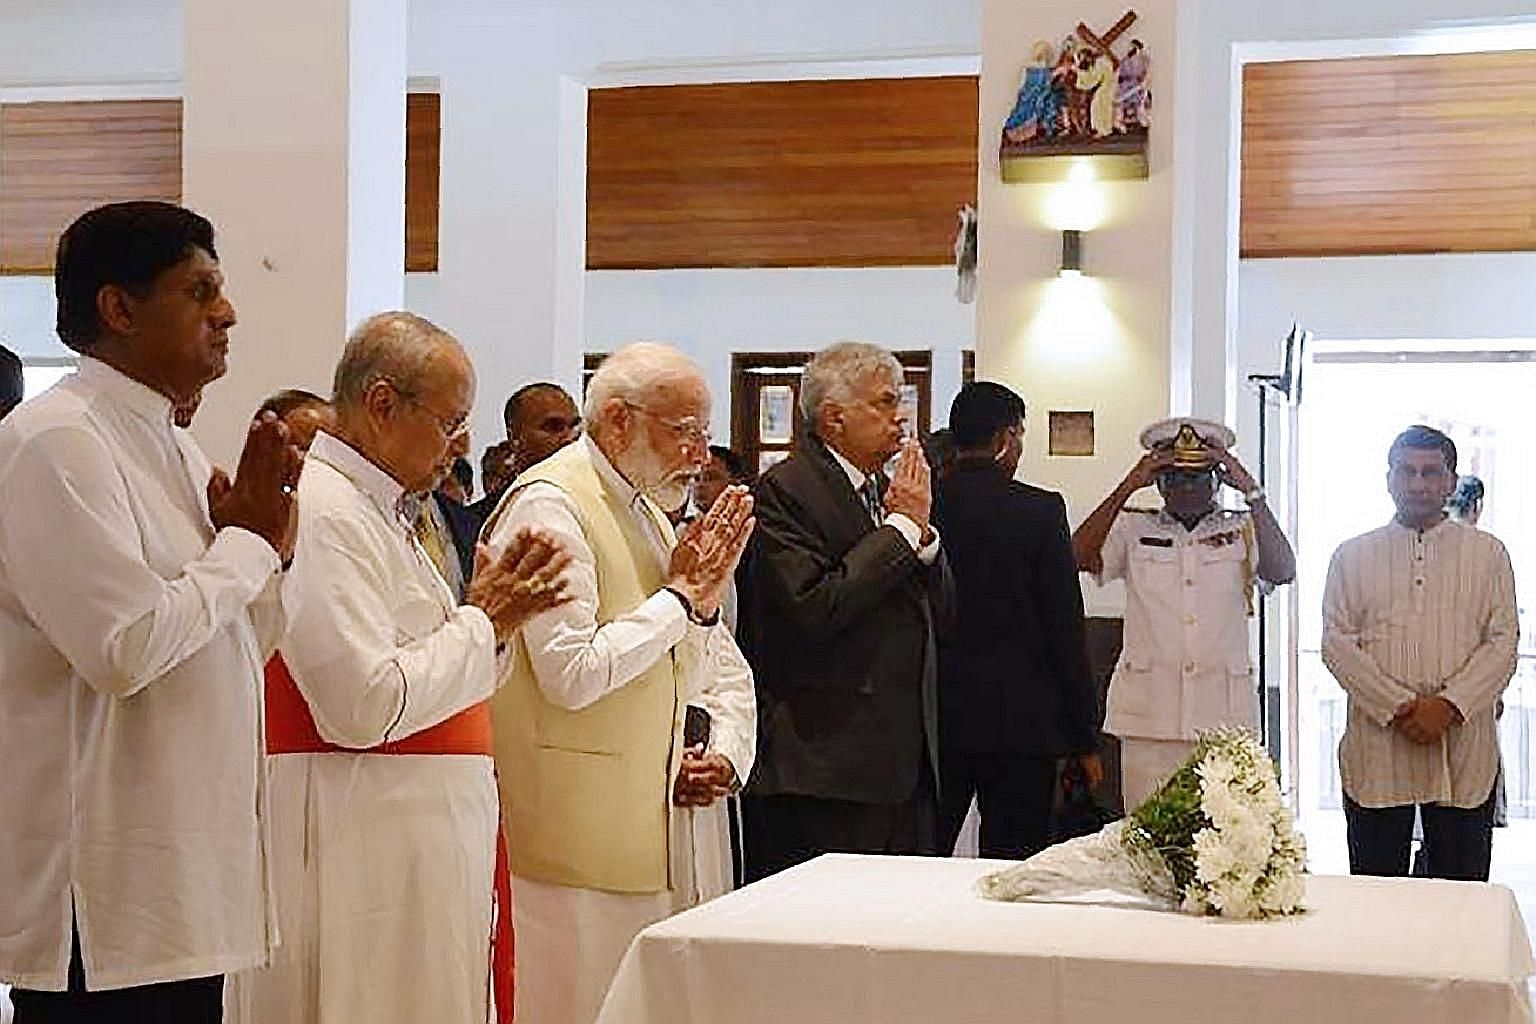 Indian Prime Minister Narendra Modi (third from left), flanked by Archbishop of Colombo Malcolm Ranjith (second from left) and Sri Lankan Prime Minister Ranil Wickremesinghe, paying respects to the victims of the Easter Sunday suicide attacks at St A